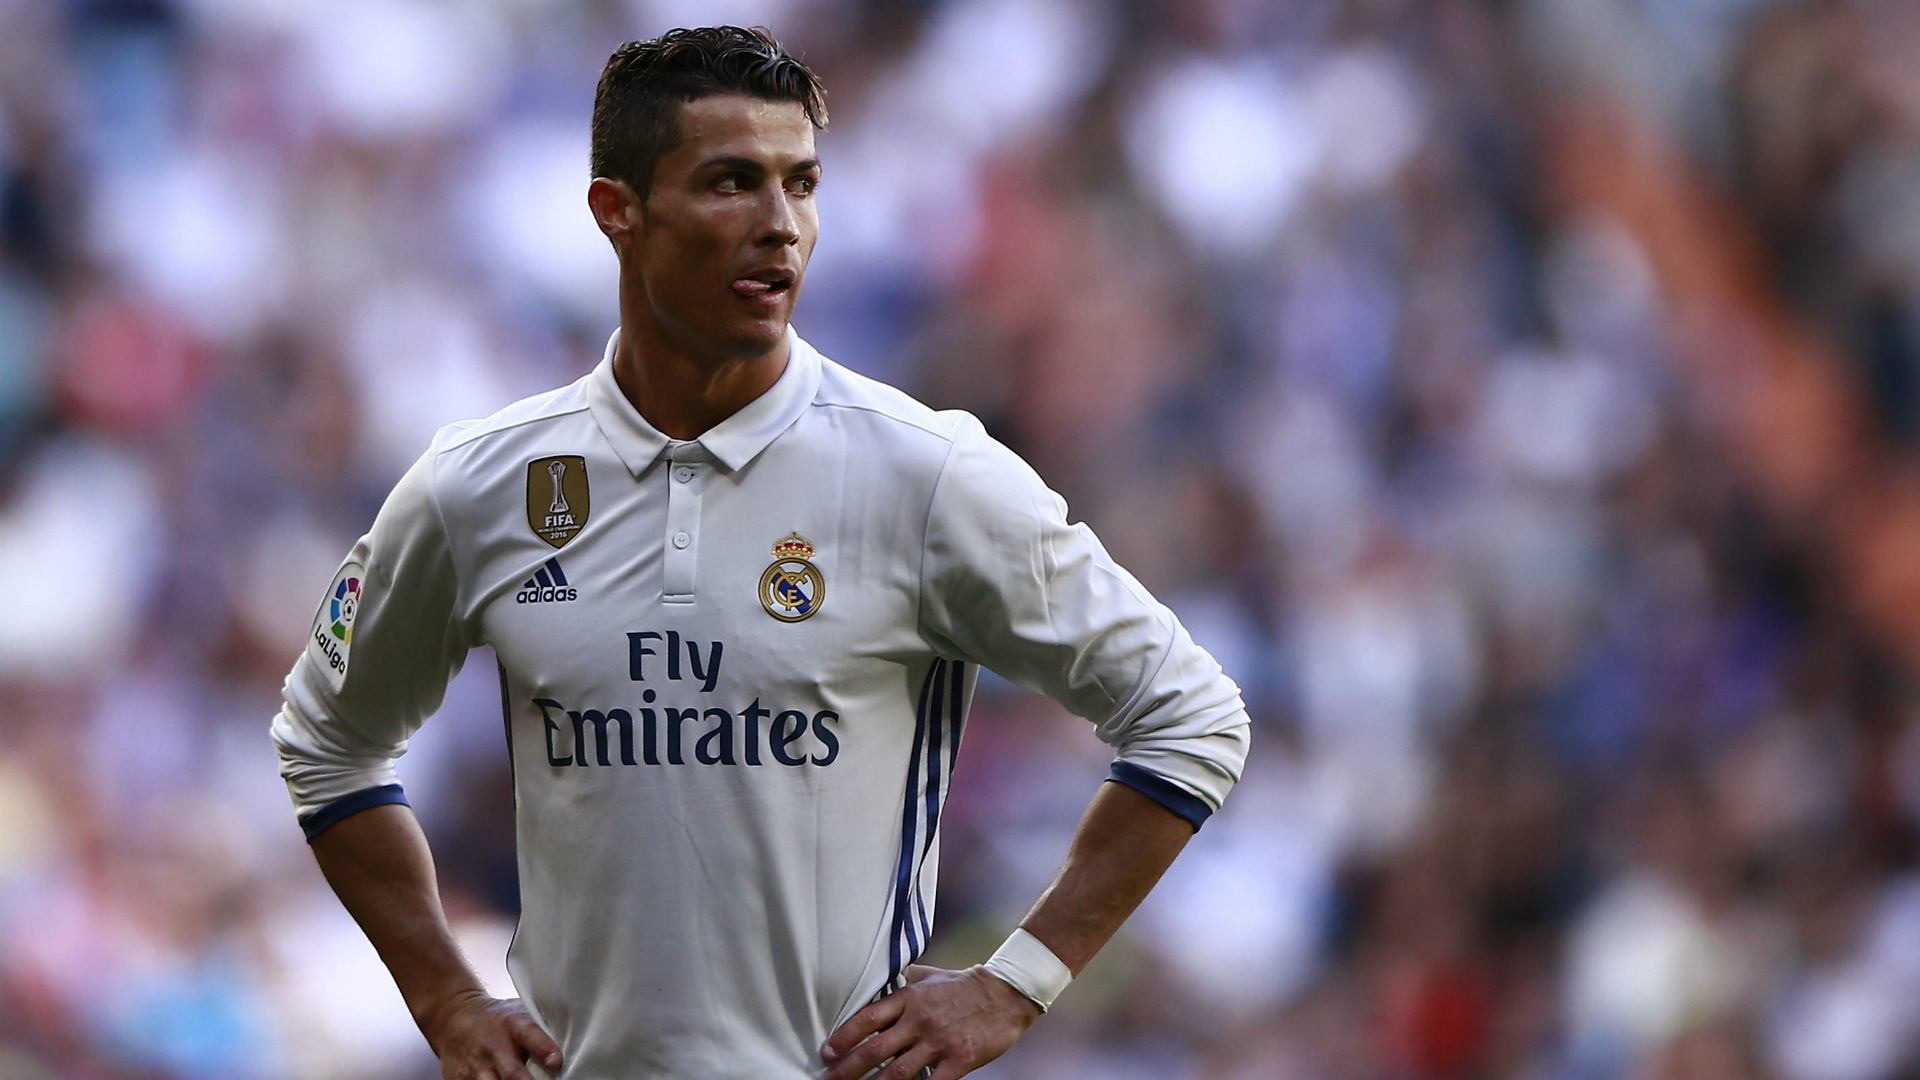 Cristiano Ronaldo left out of Real Madrid squad for Deportivo